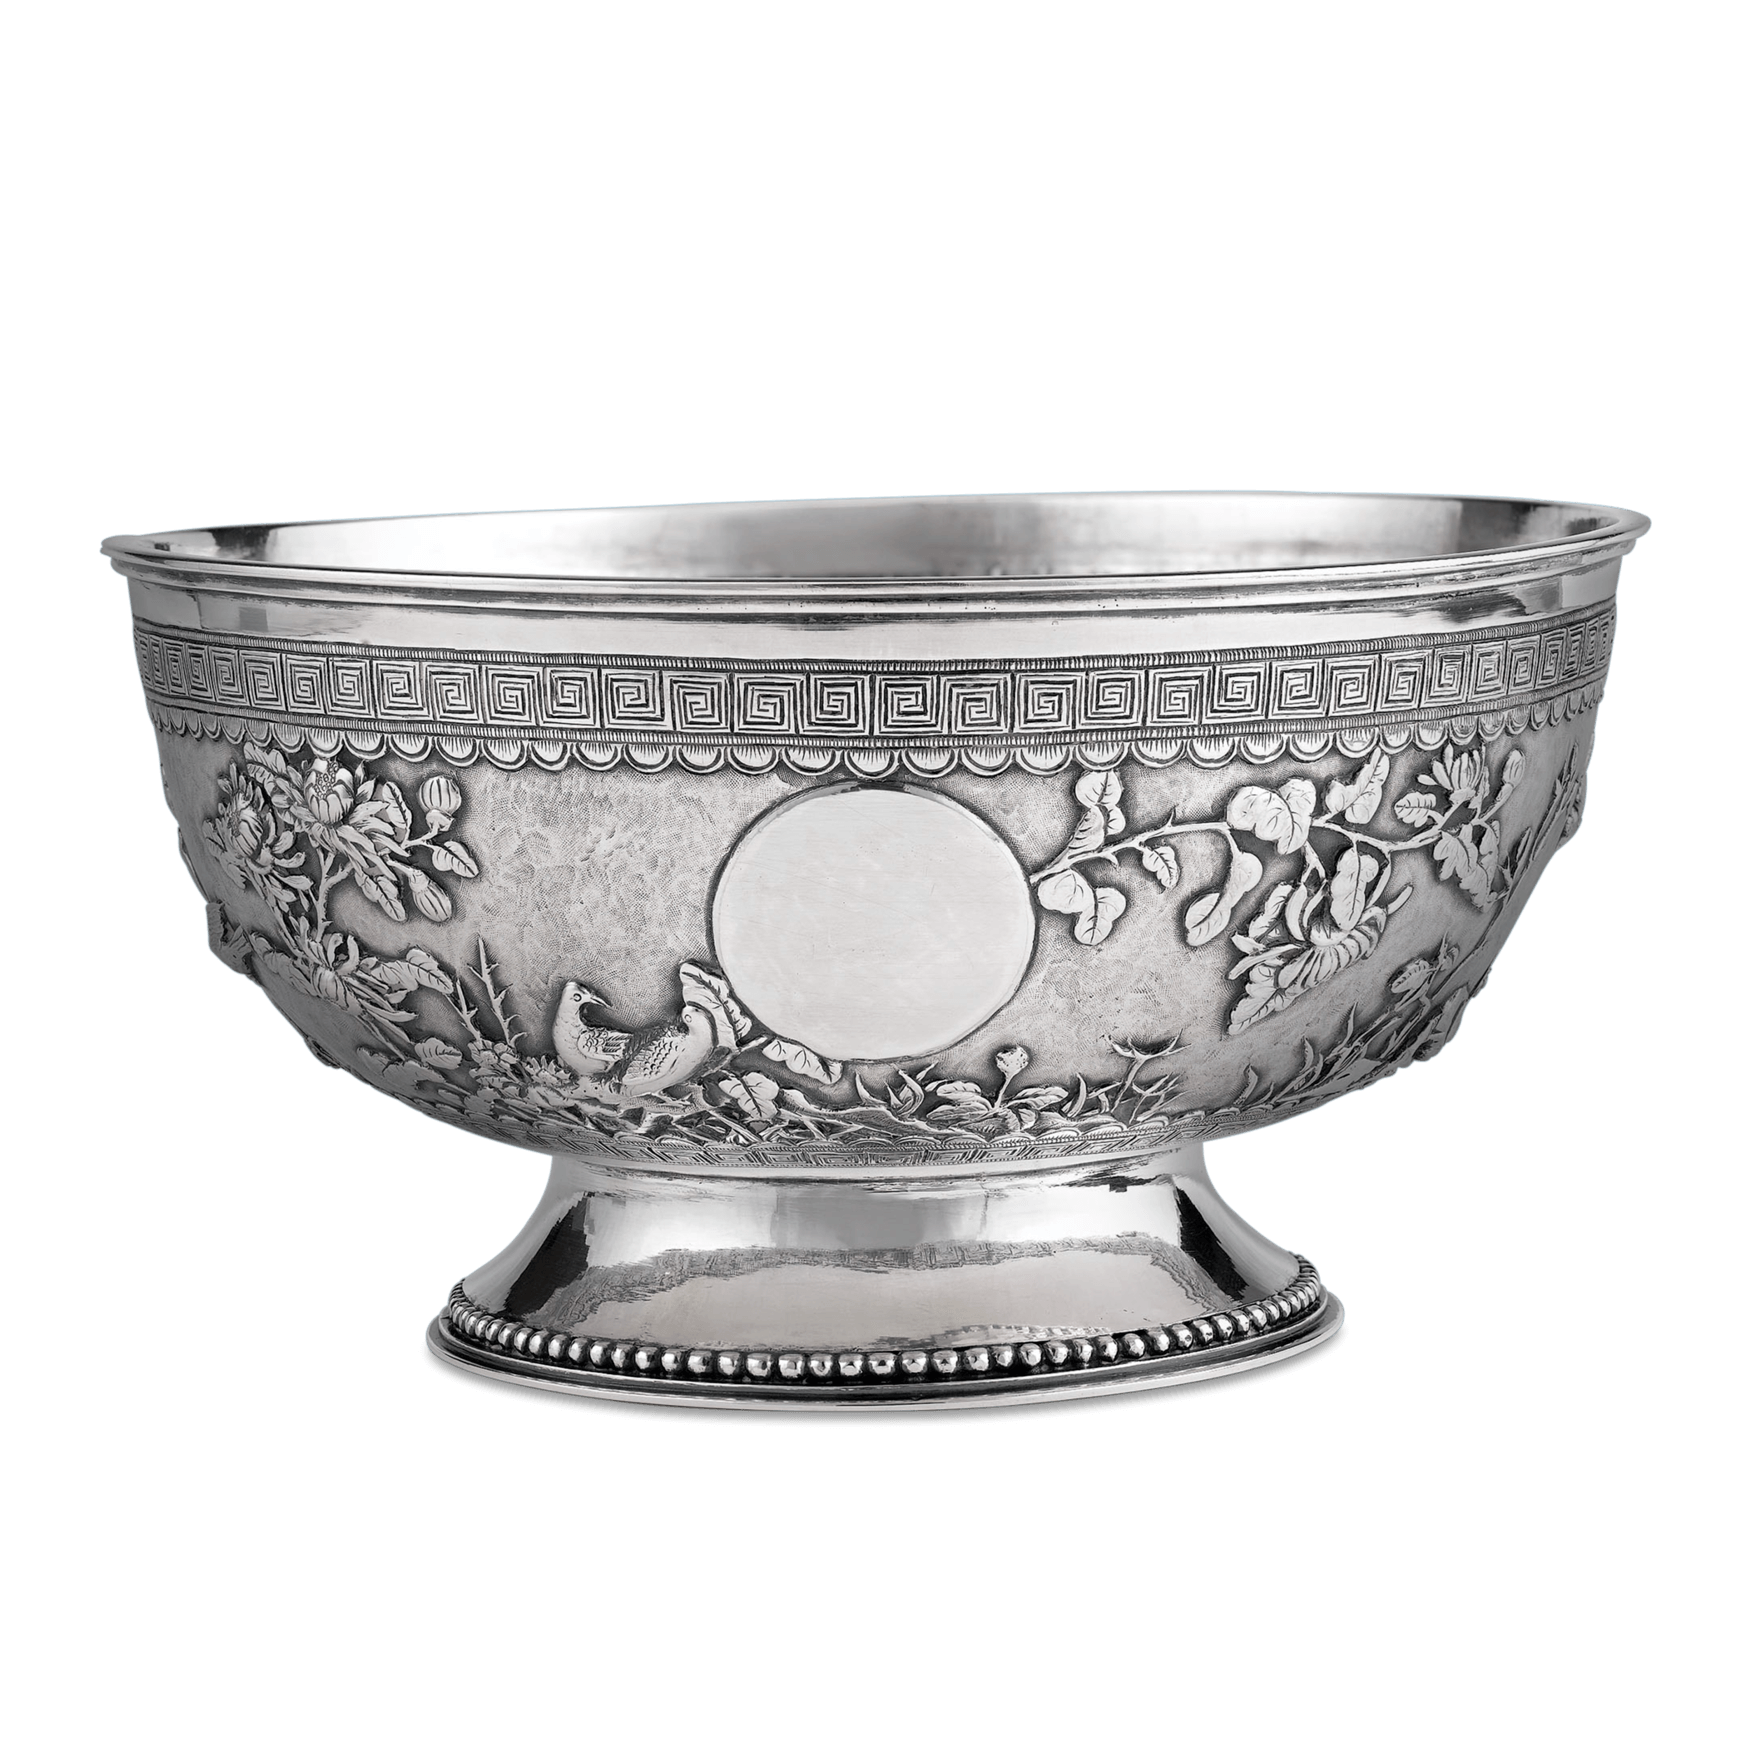 Transparent bowl silver. Chinese export